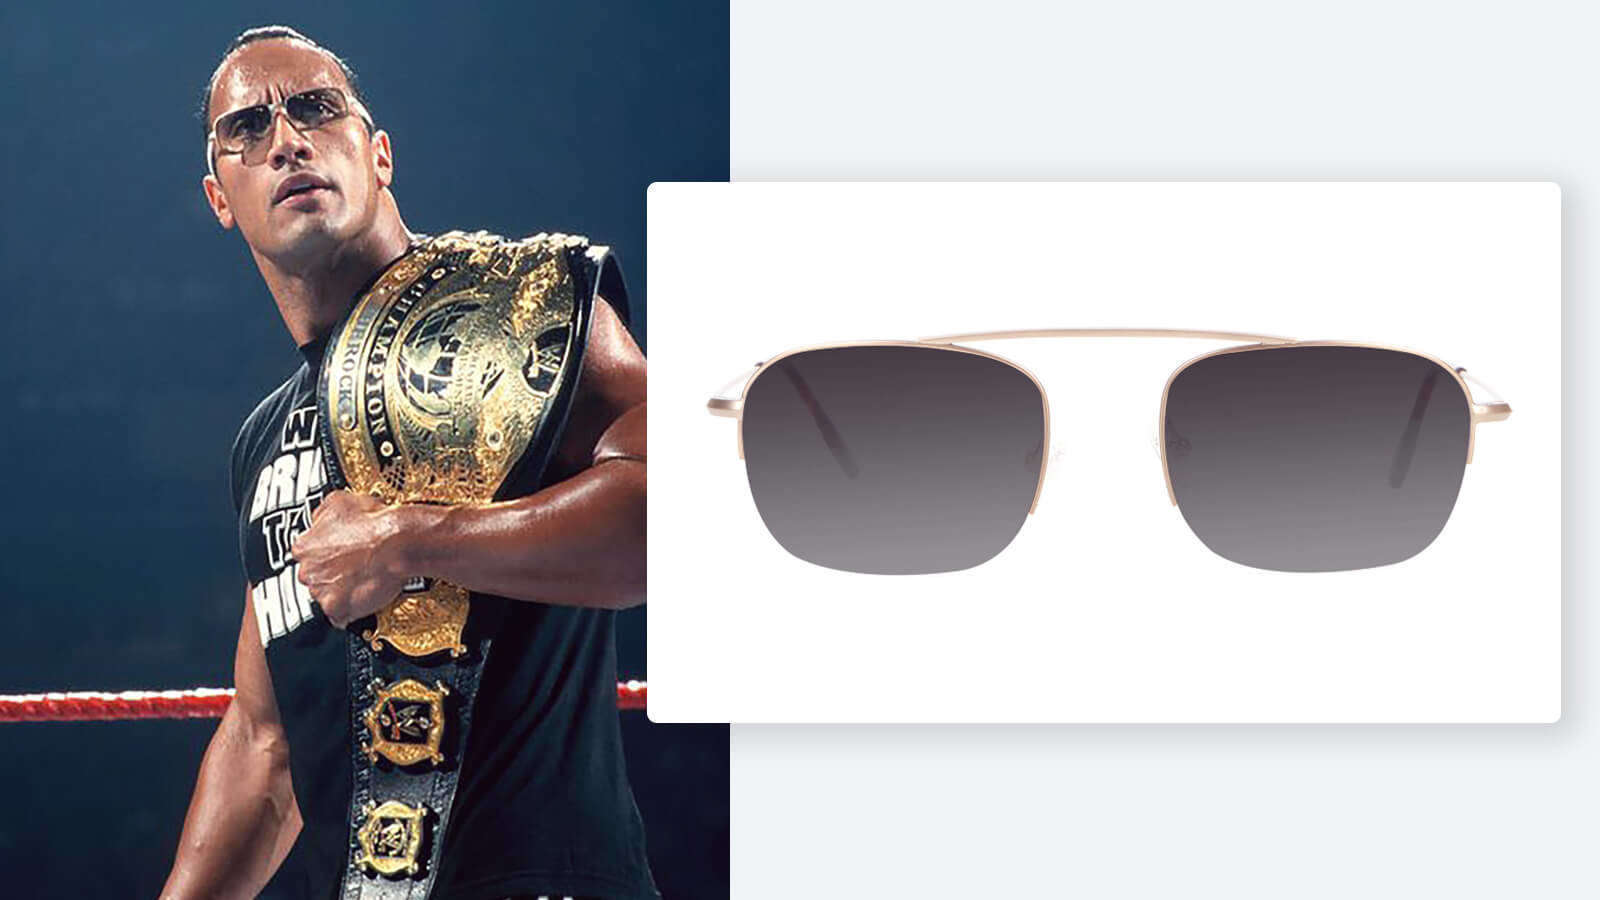 Dwayne Johnson WWE Sunglasses